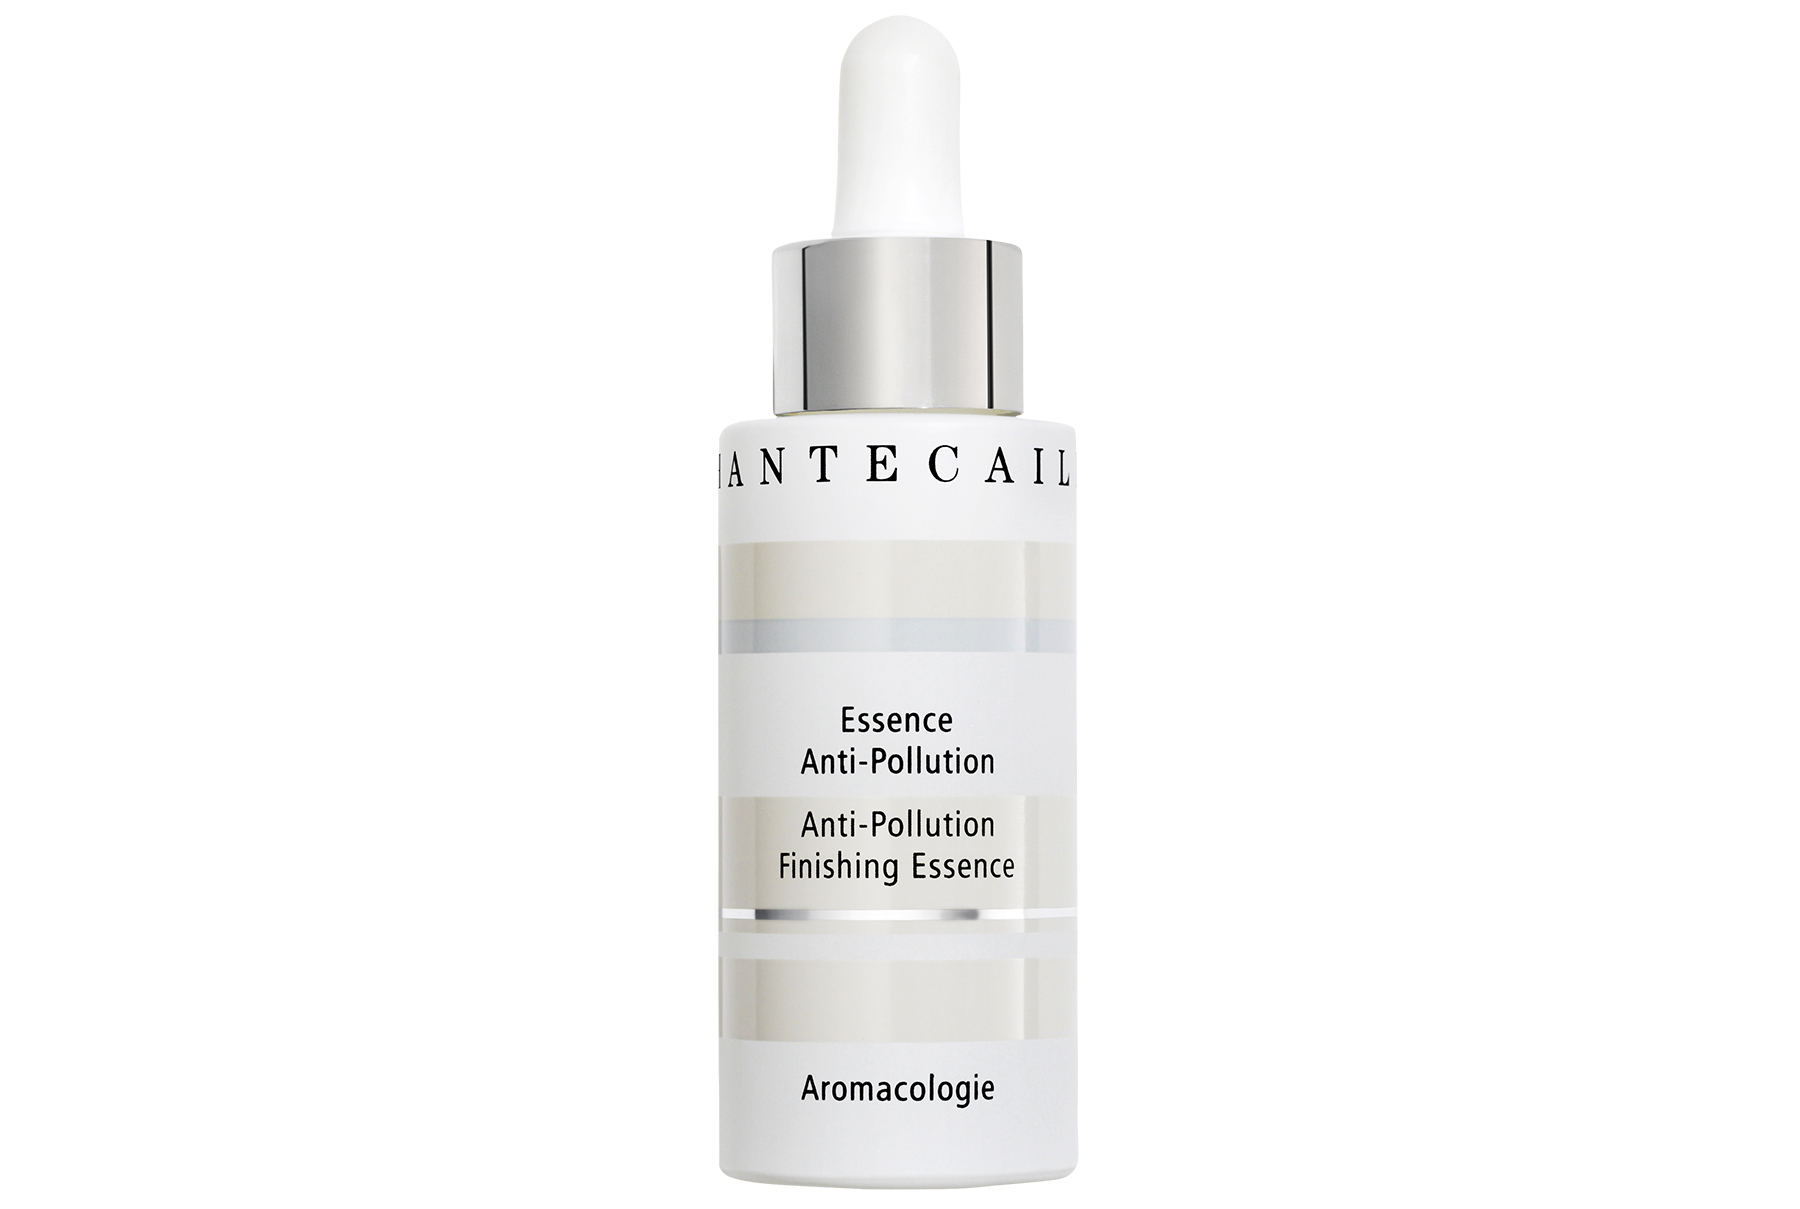 Chantecaille Anti-Pollution Finishing Essence